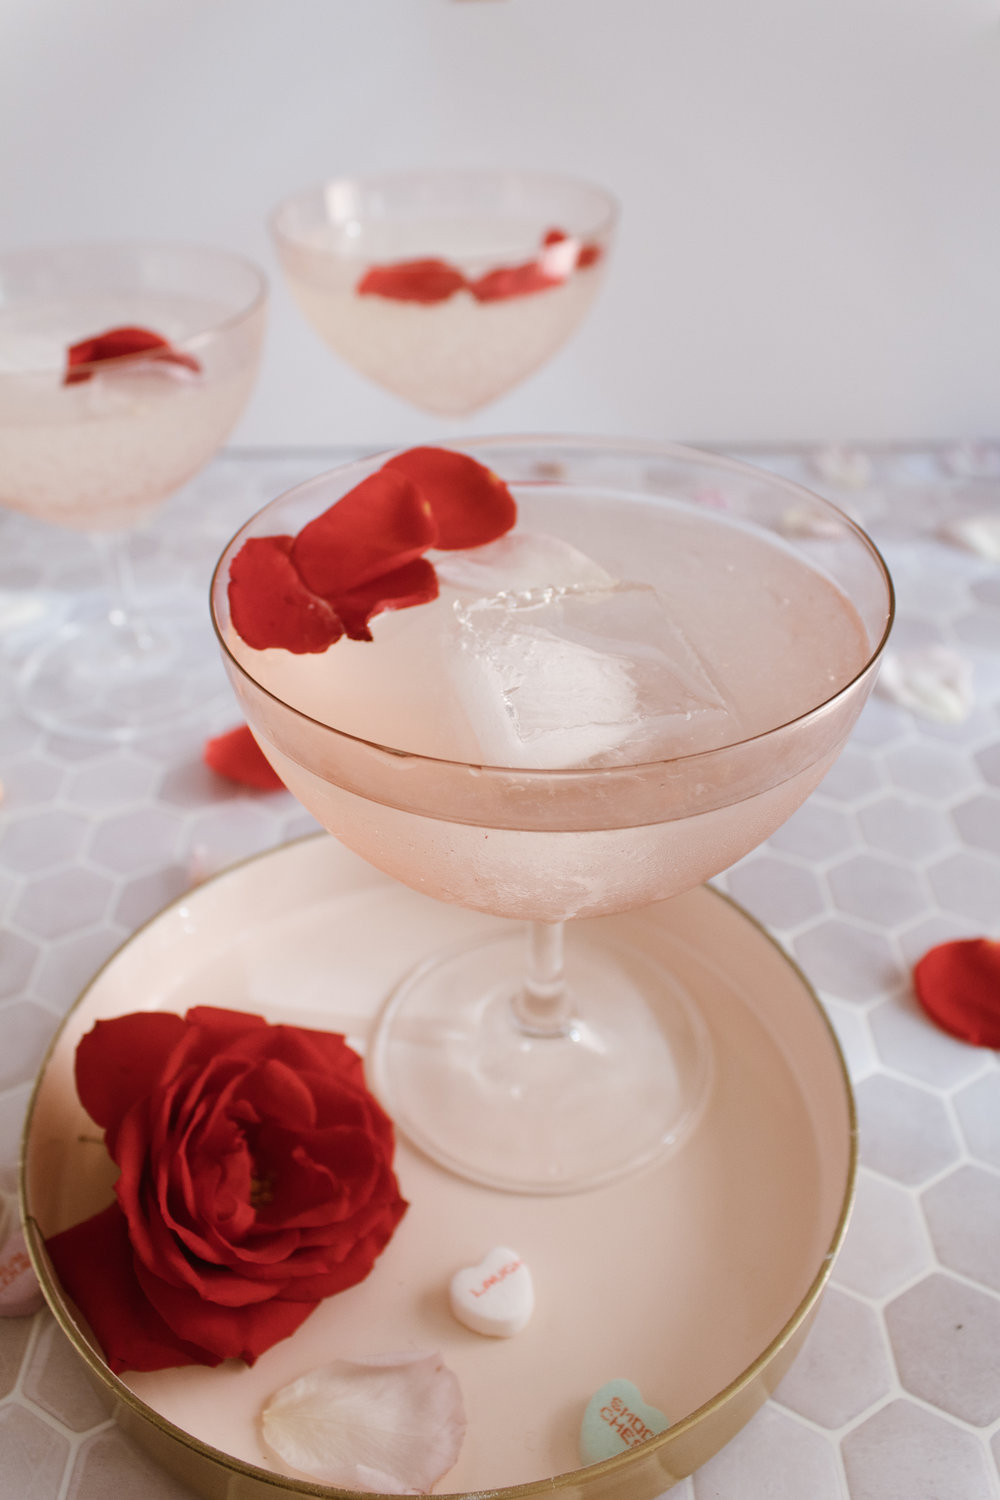 Rose Cocktail via Crush Co.